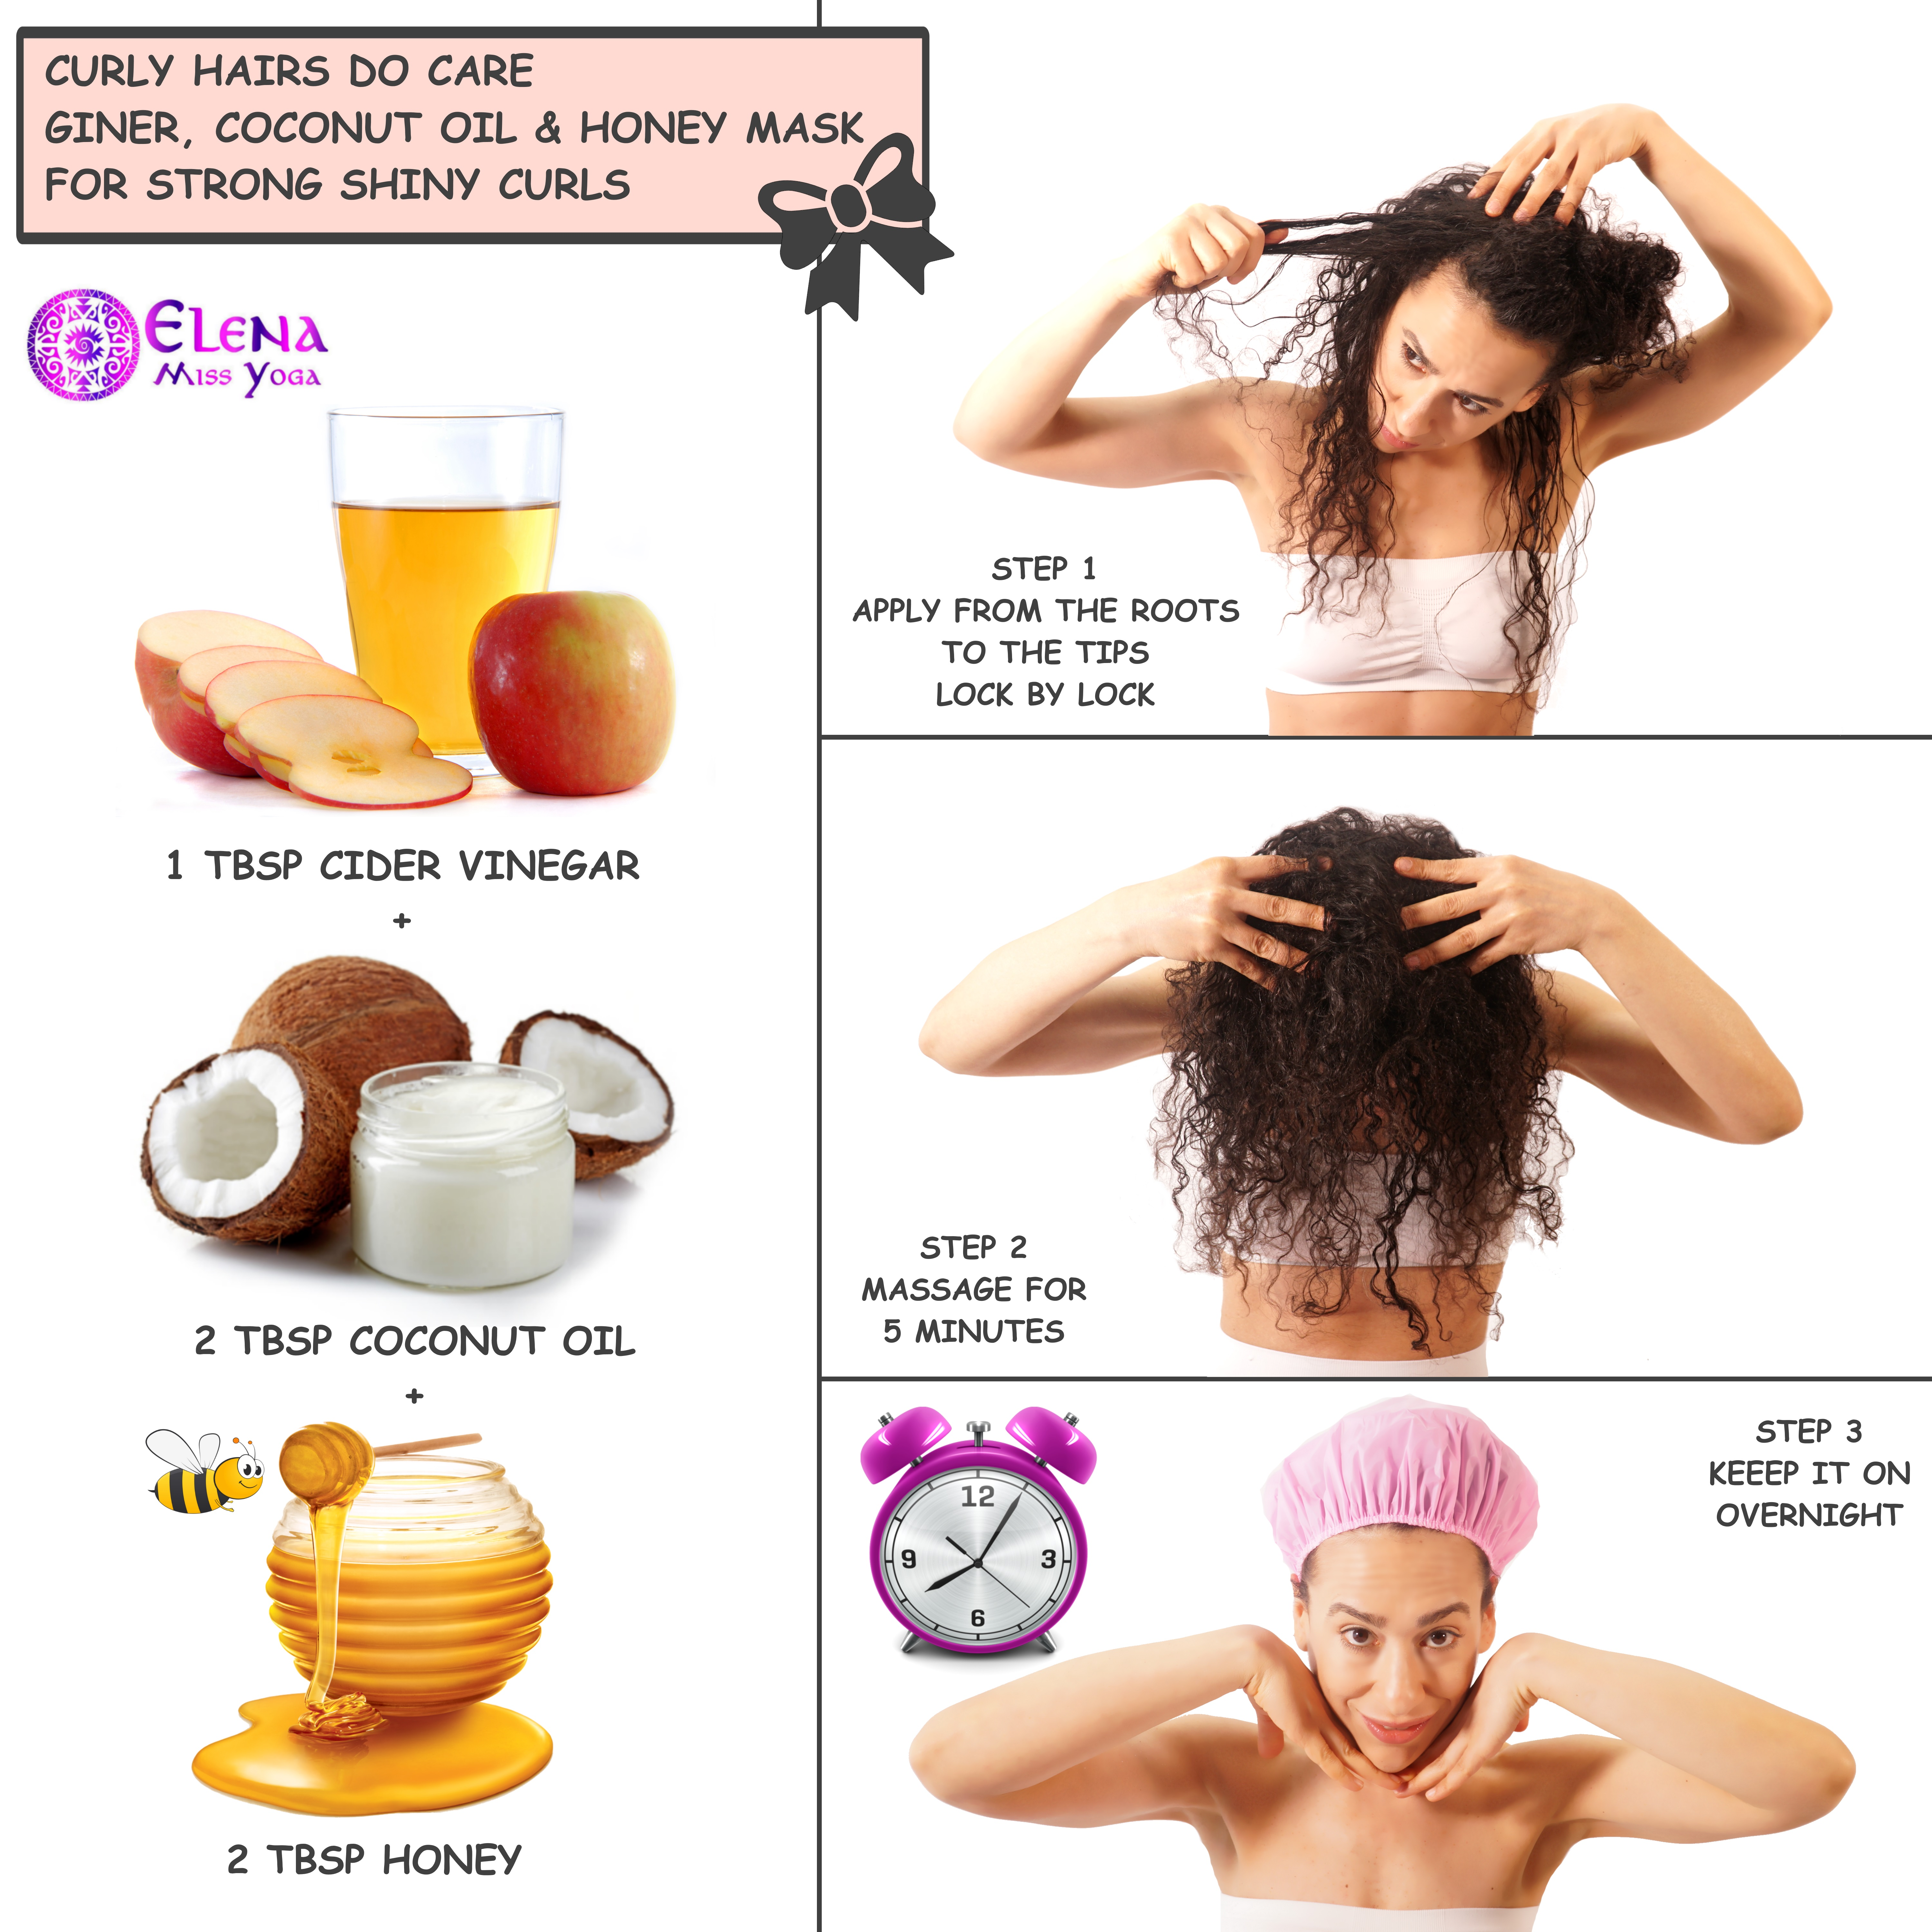 GINGER COCONUT AND HONEY MASK - FOR STRONG SHINY CURLS